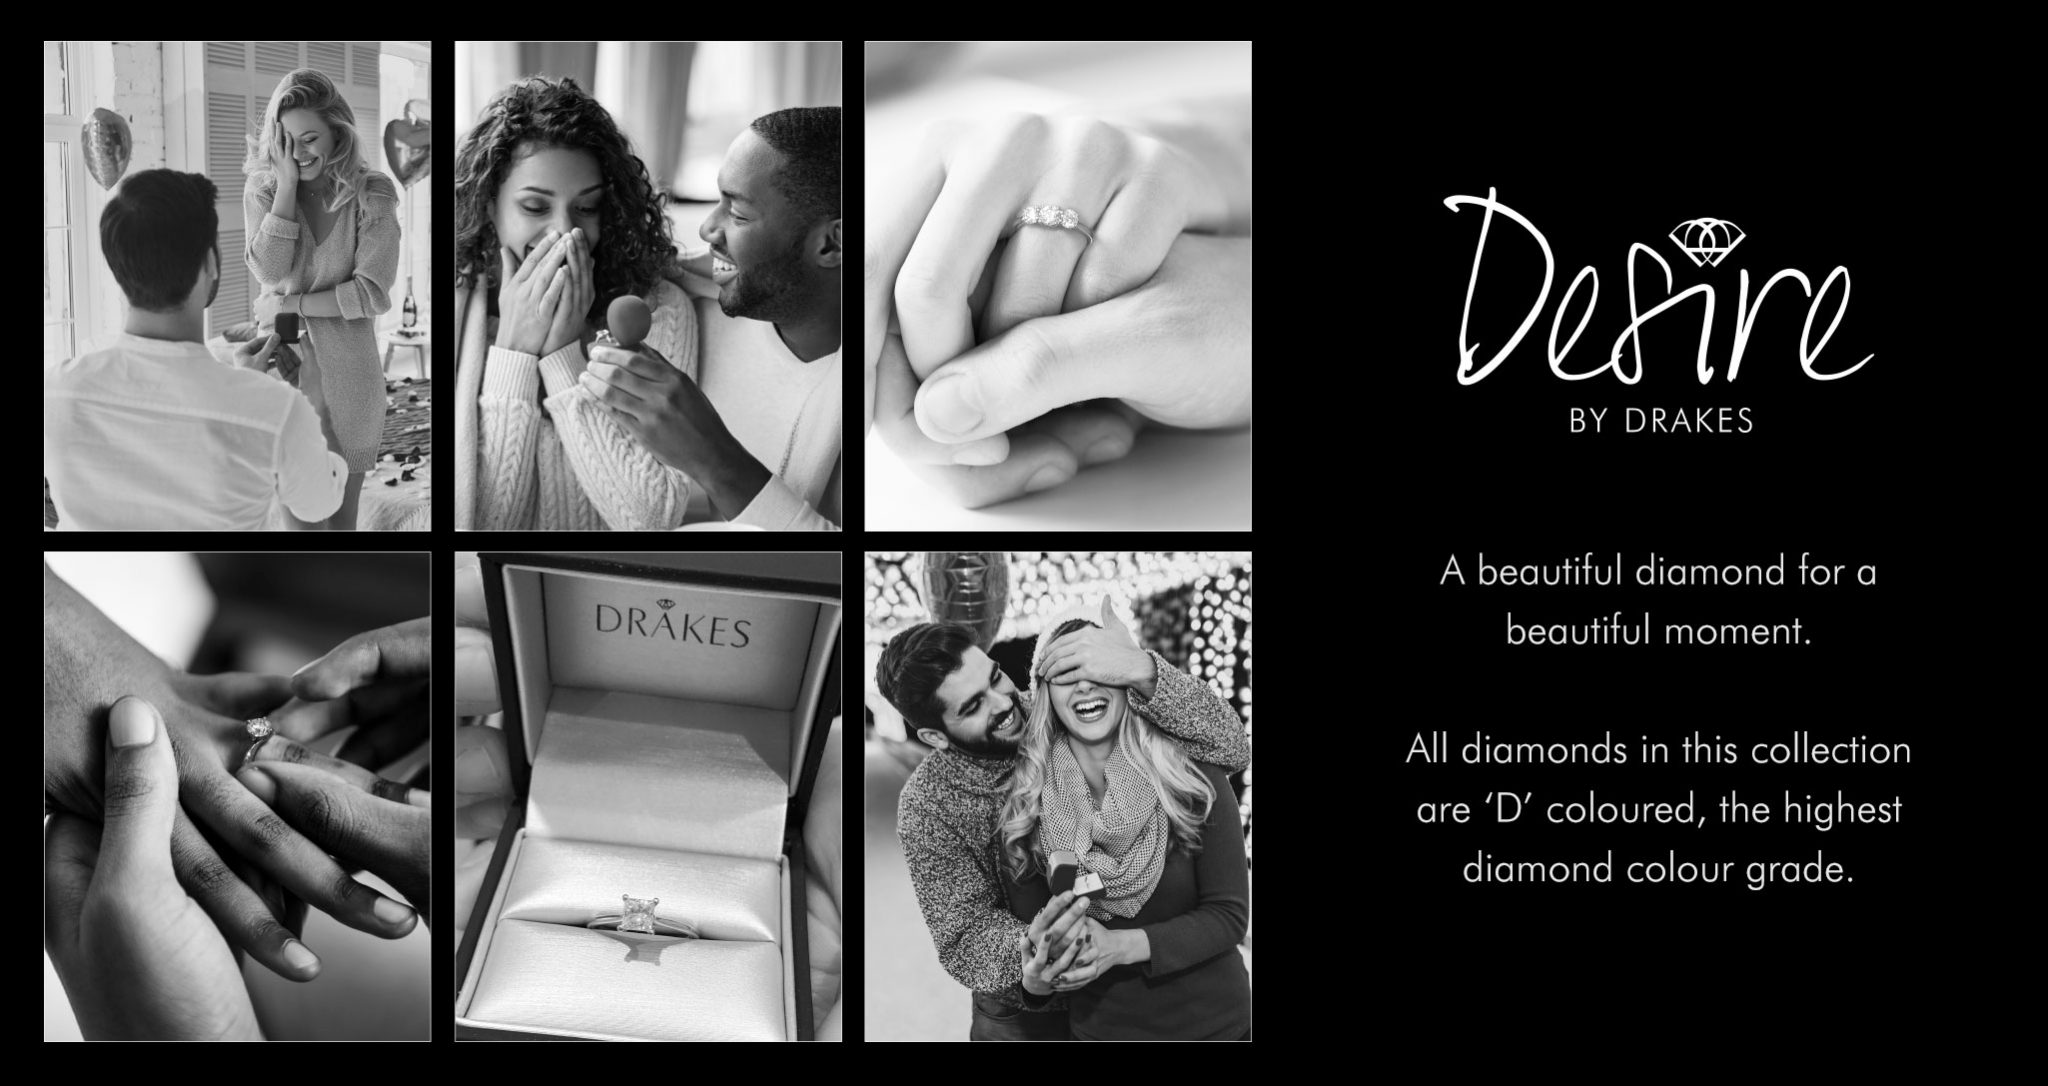 Drakes Jewellers, Desire, Desire By Drakes